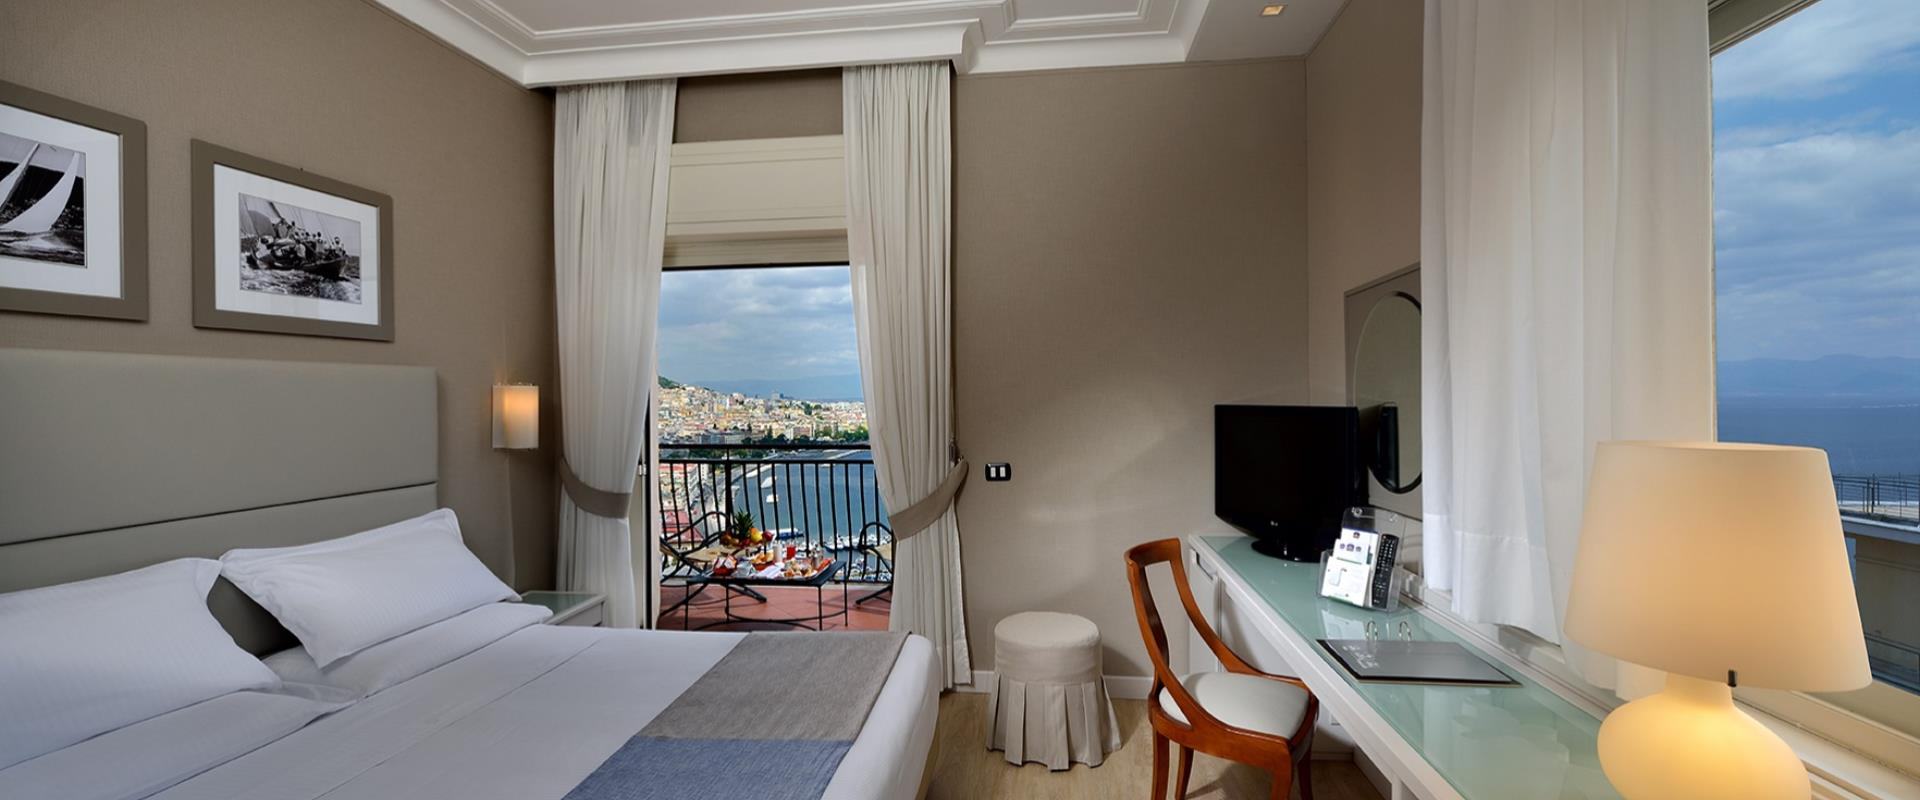 4 star hotels in Naples